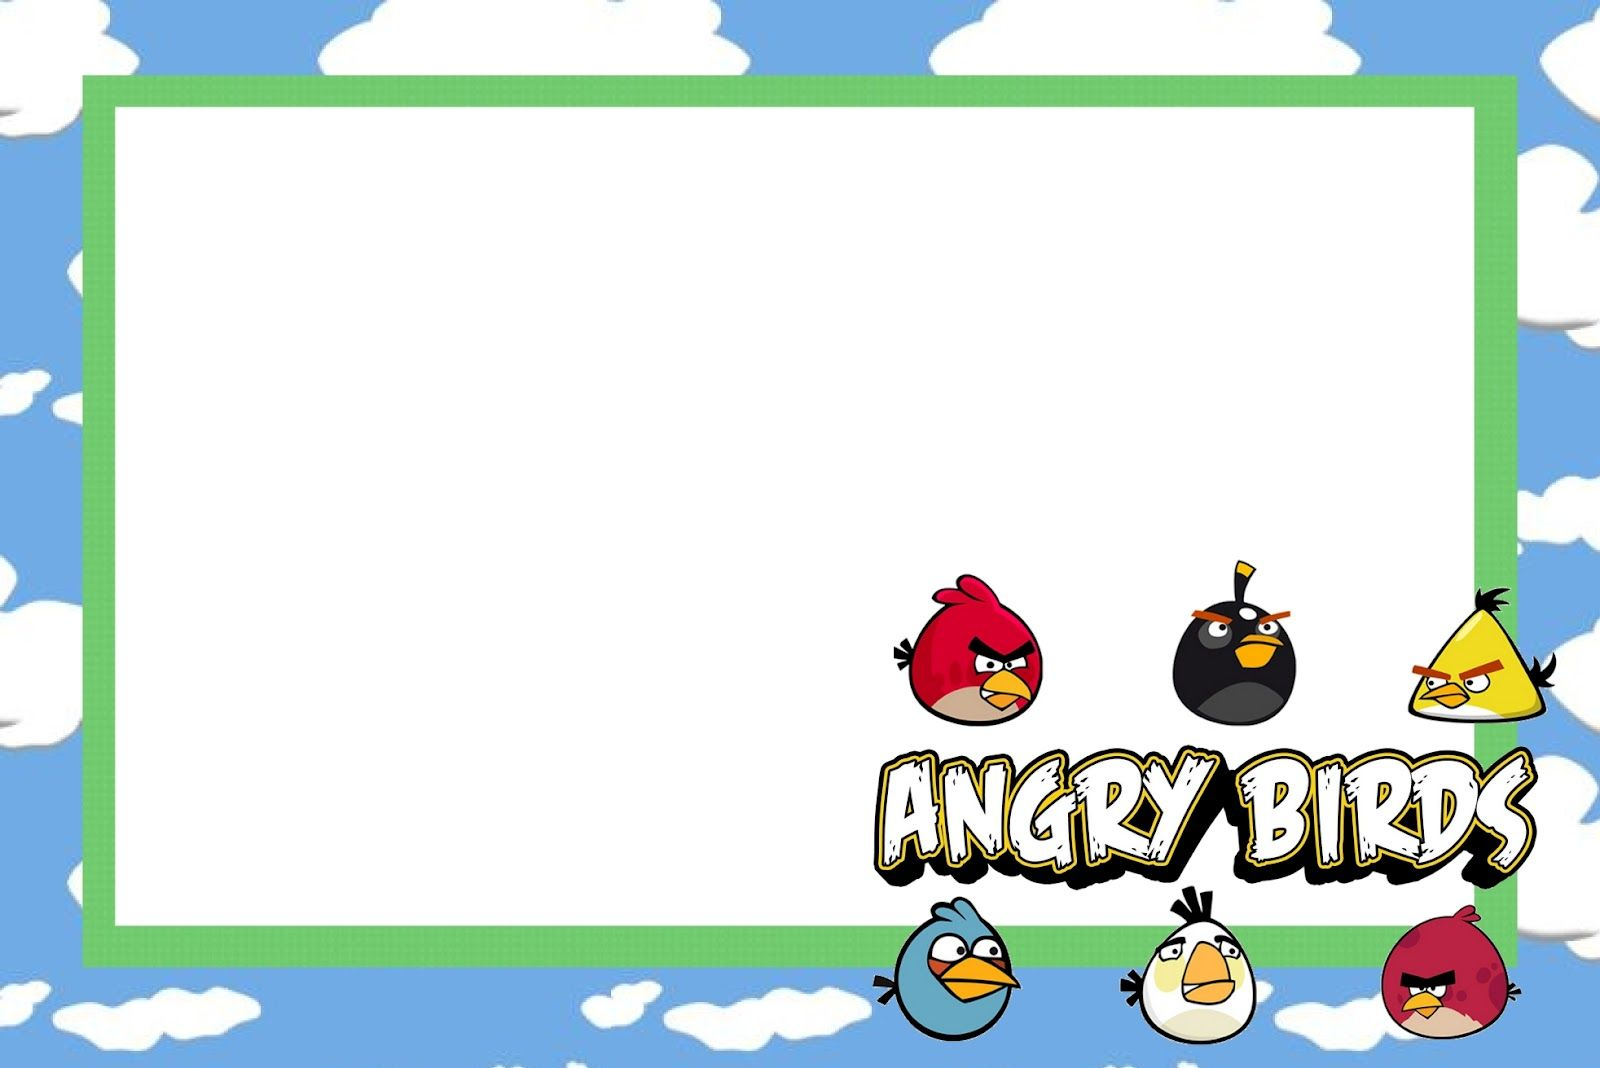 Angry Birds Free Printable Party Invitations – Angry Birds Party Invitations